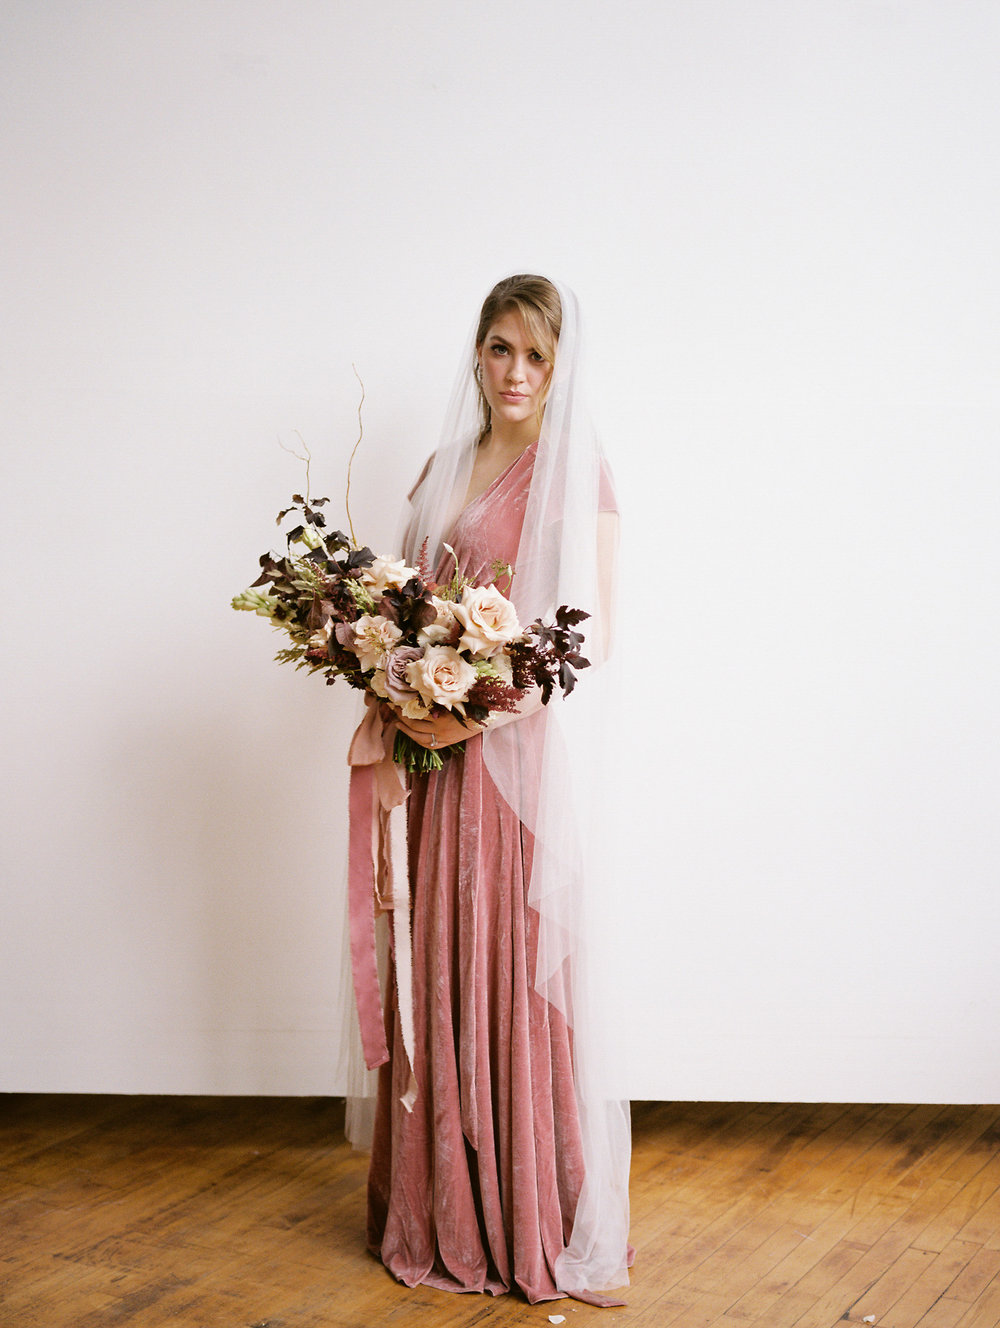 WHEN-SHE-KNEW-PHOTOGRAPHY-STYLED-WEDDING-EDITORIAL-OREGON-68.jpg